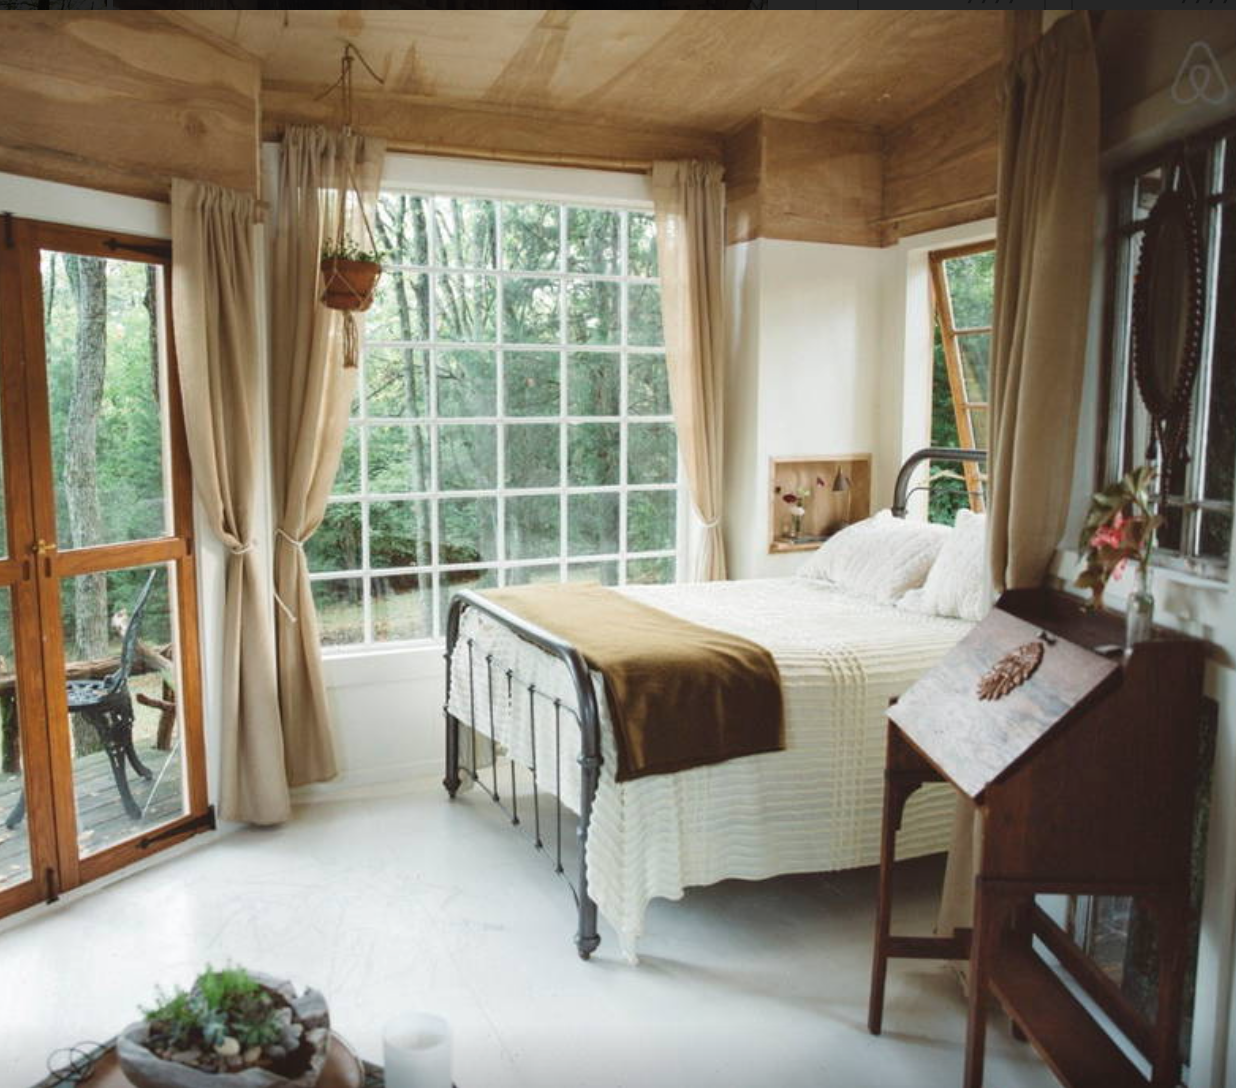 An example of lovely hospitality = our friends  Sloane and Emily Leonard Southard's guesthouse .